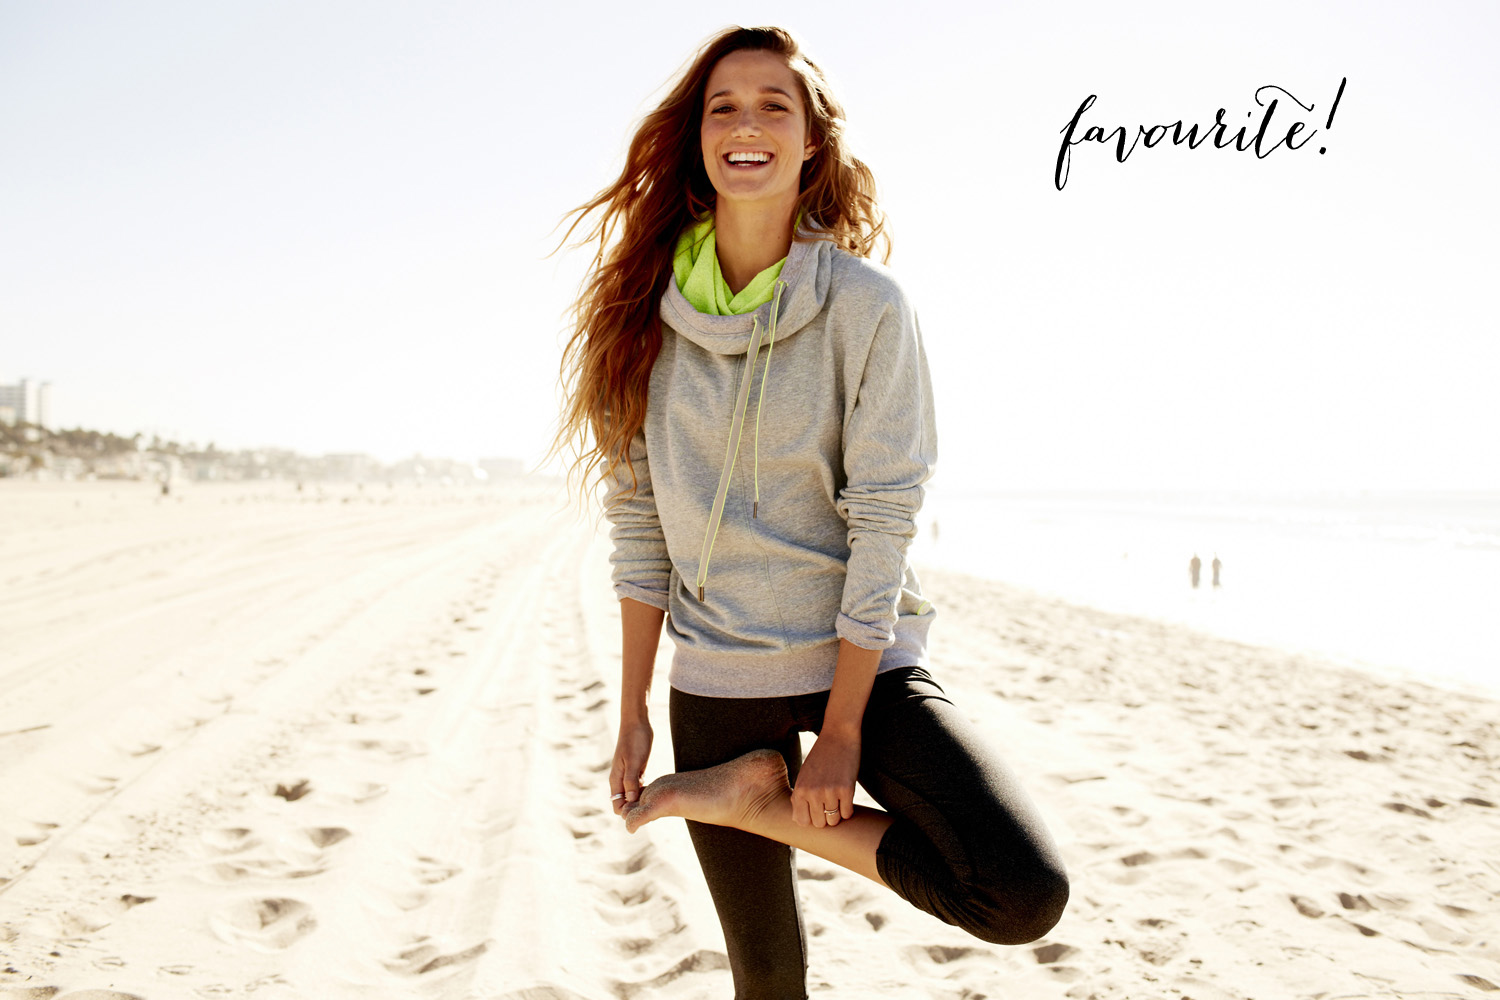 Fashionspy: Roxy herfst collectie